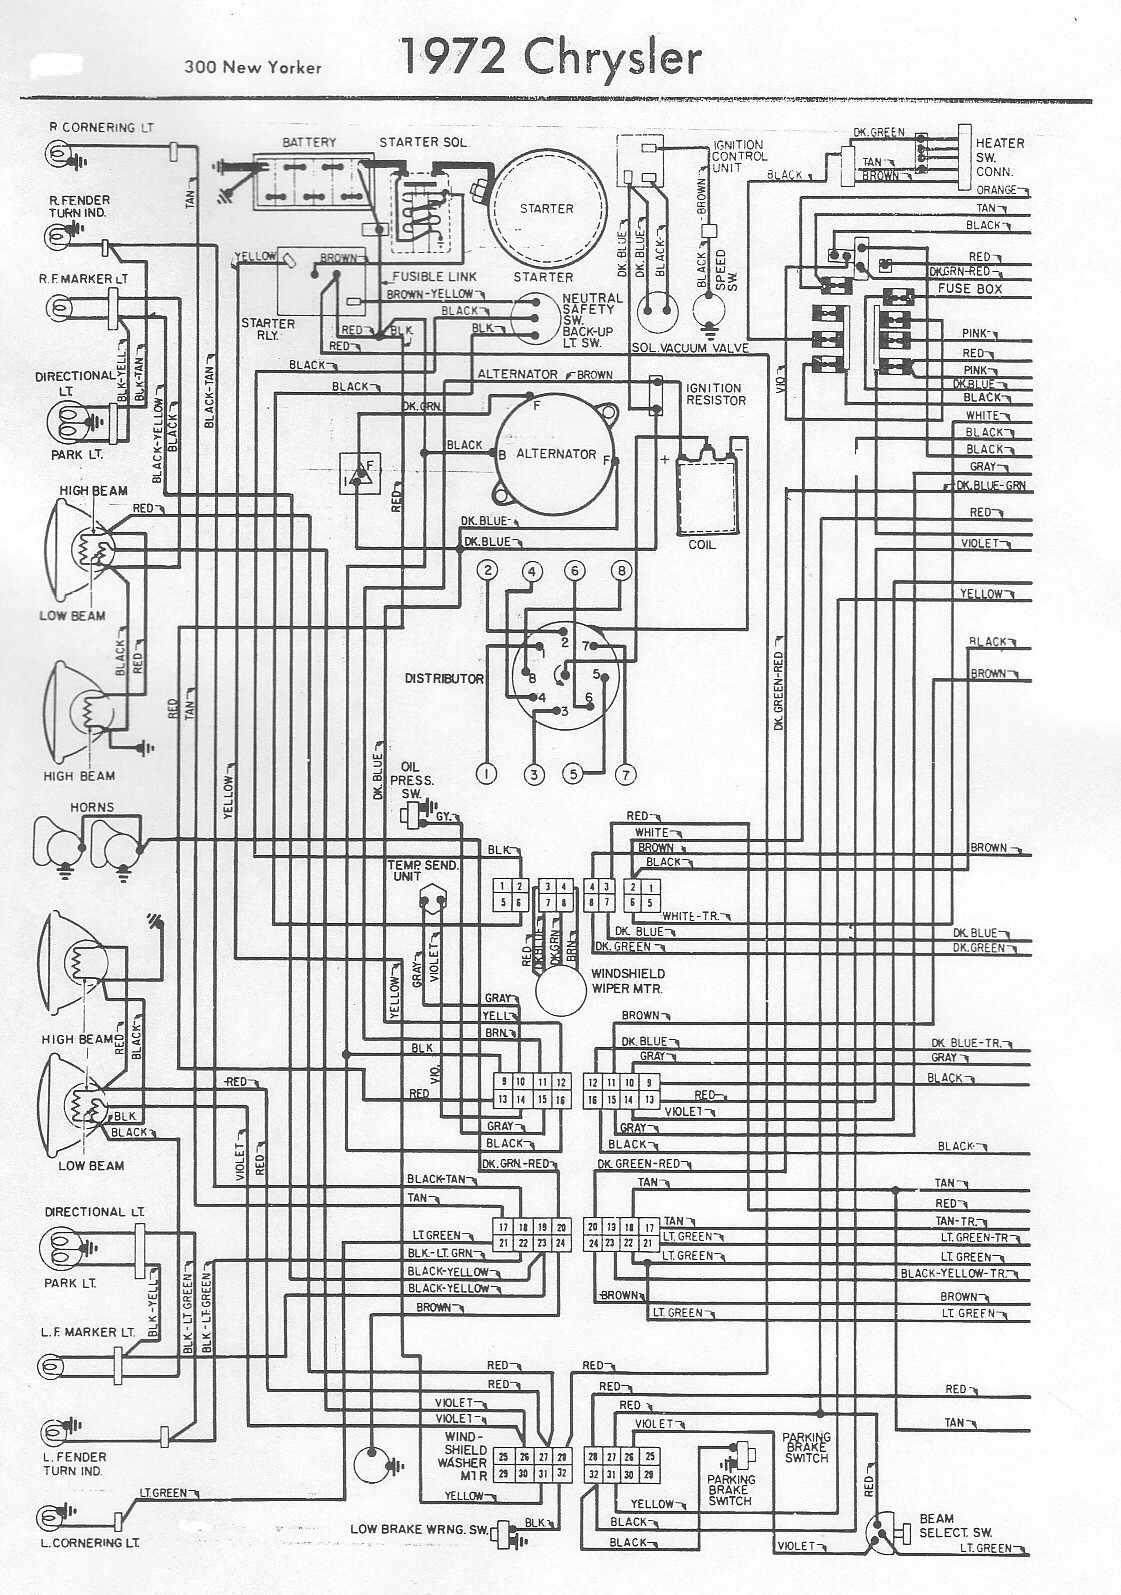 1971 Dodge Ignition Wiring Diagram List Of Schematic Circuit 1934 Diagrams Just Data Rh Ag Skiphire Co Uk